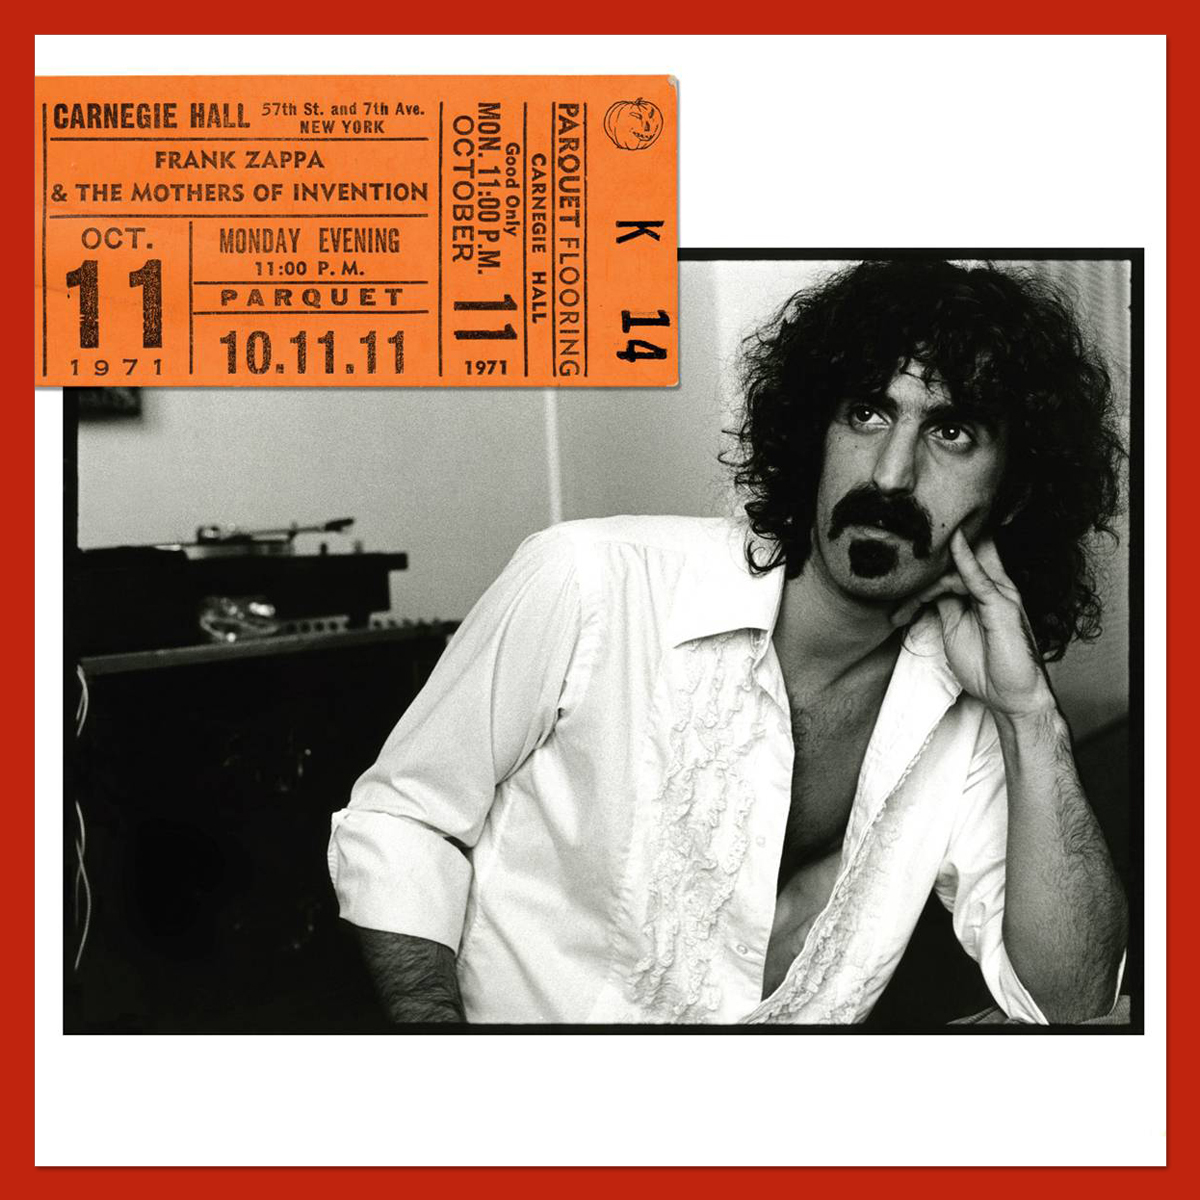 Frank Zappa Zappa Anyway The Wind Blows - Disc One